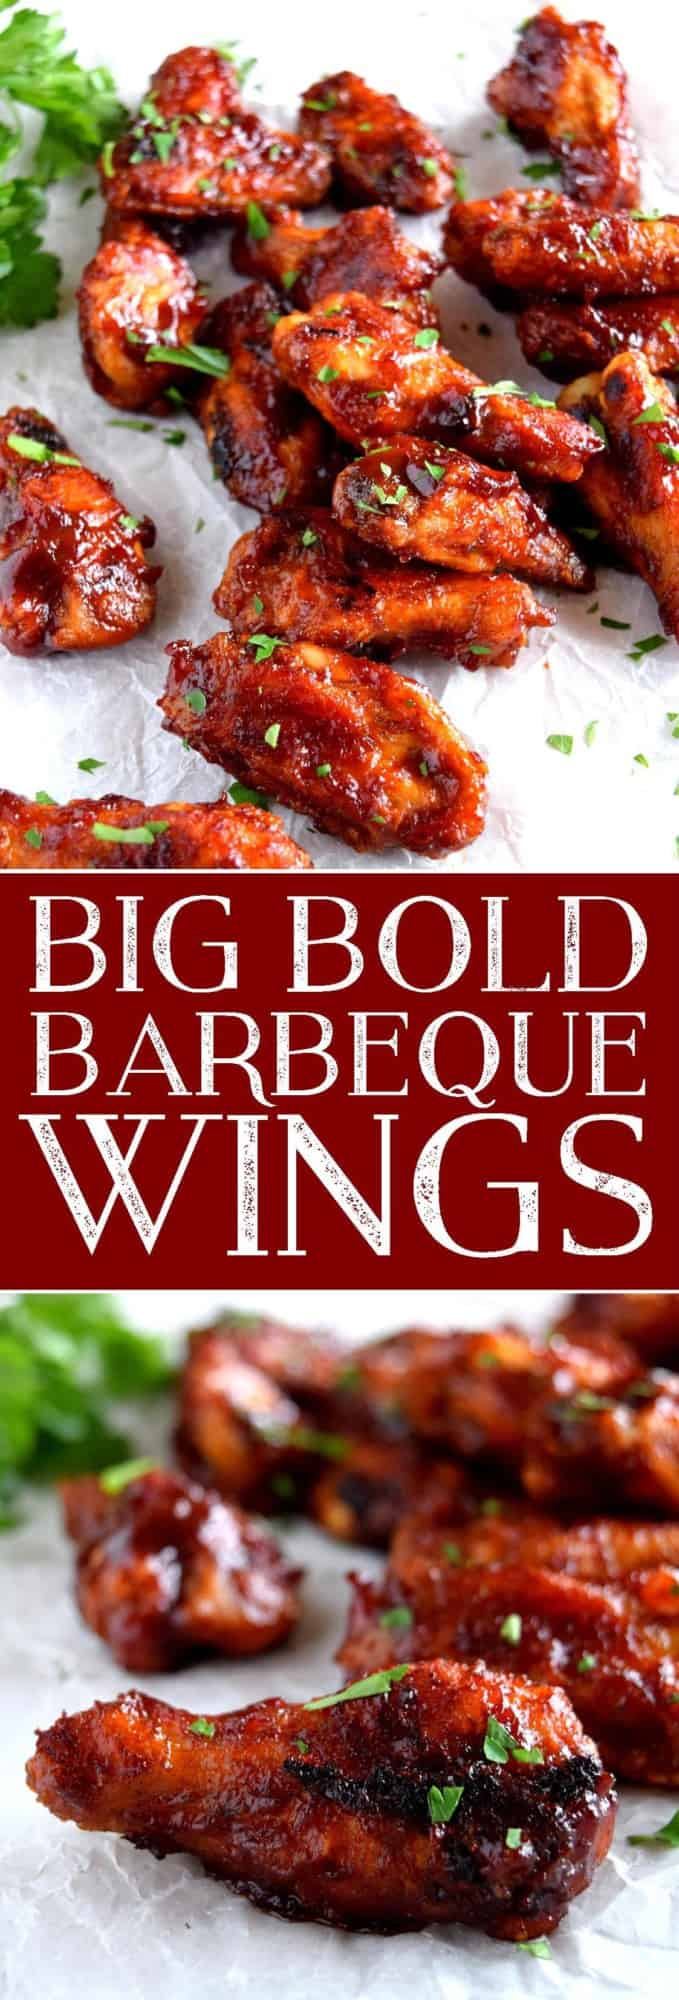 Big Bold Barbeque Wings